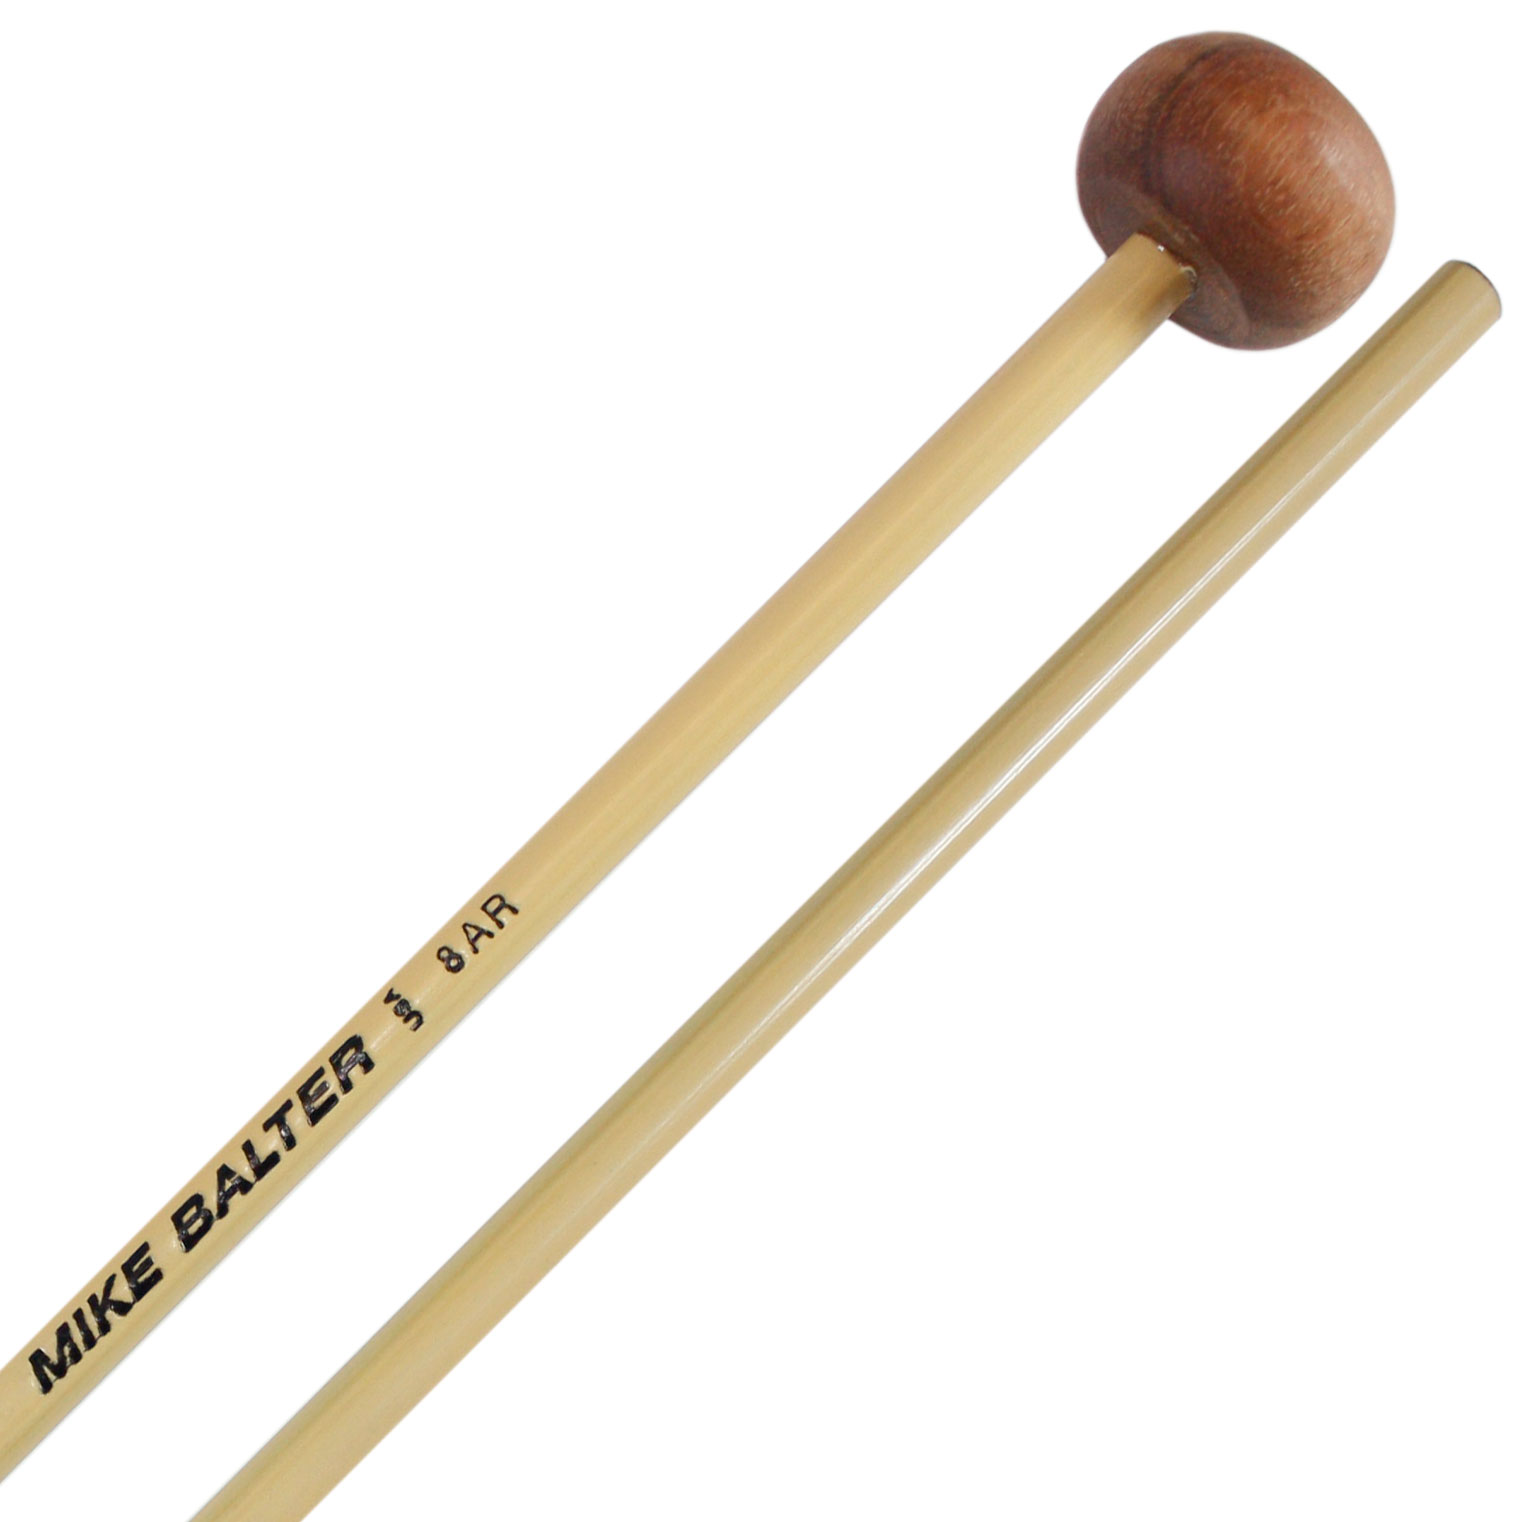 Mike Balter Unwound Large Rosewood Xylophone Mallets with Rattan Handles